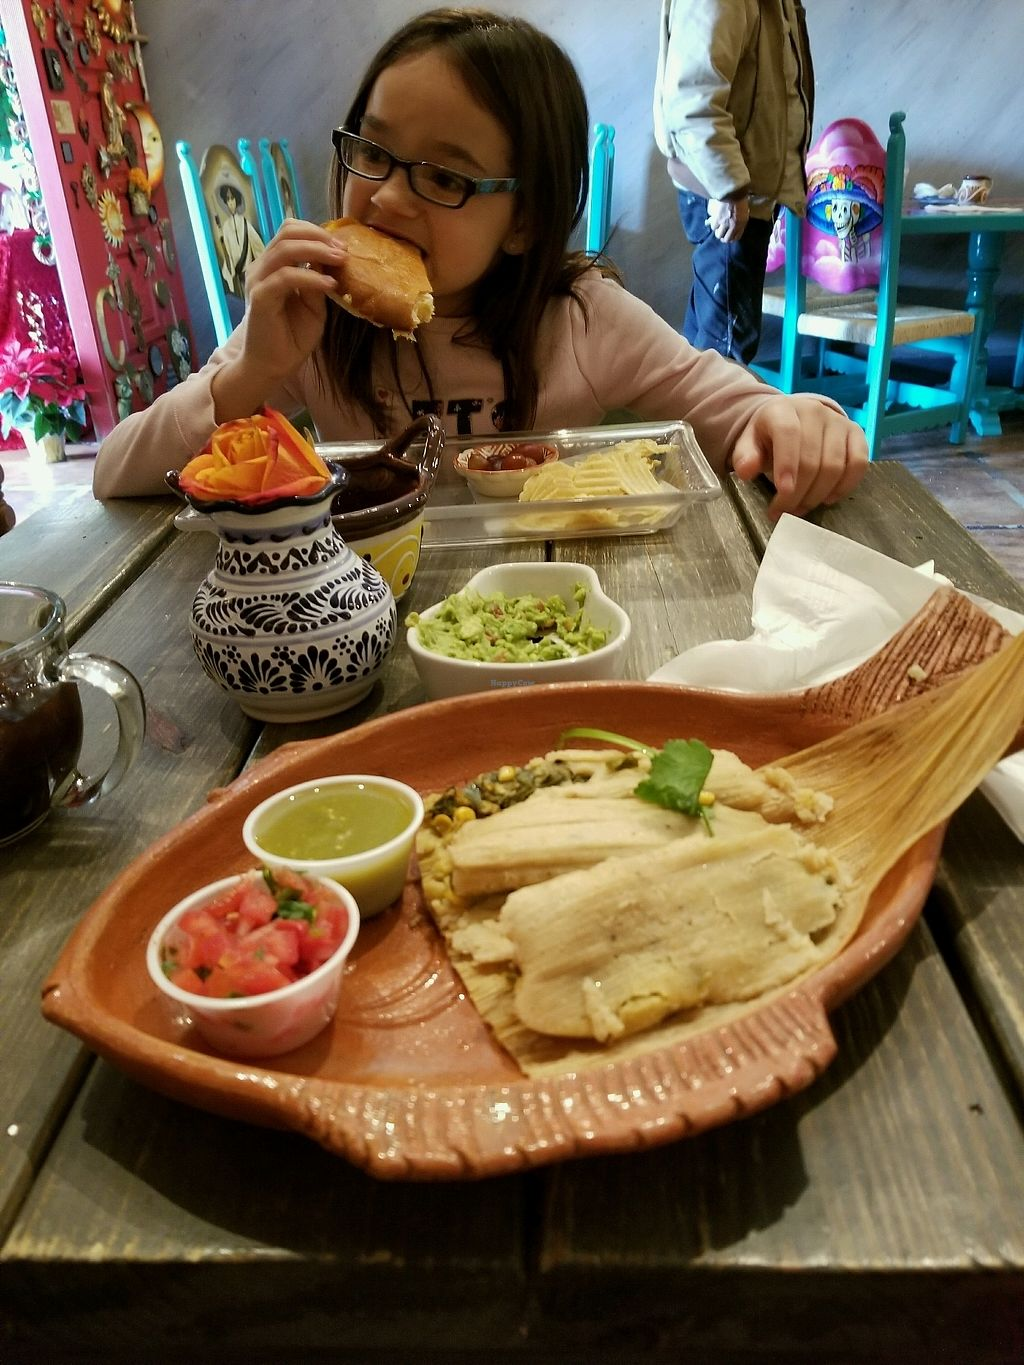 """Photo of Frida's Cafe  by <a href=""""/members/profile/RachelSarahGeorge"""">RachelSarahGeorge</a> <br/>Best tamales! <br/> December 17, 2017  - <a href='/contact/abuse/image/88806/336533'>Report</a>"""